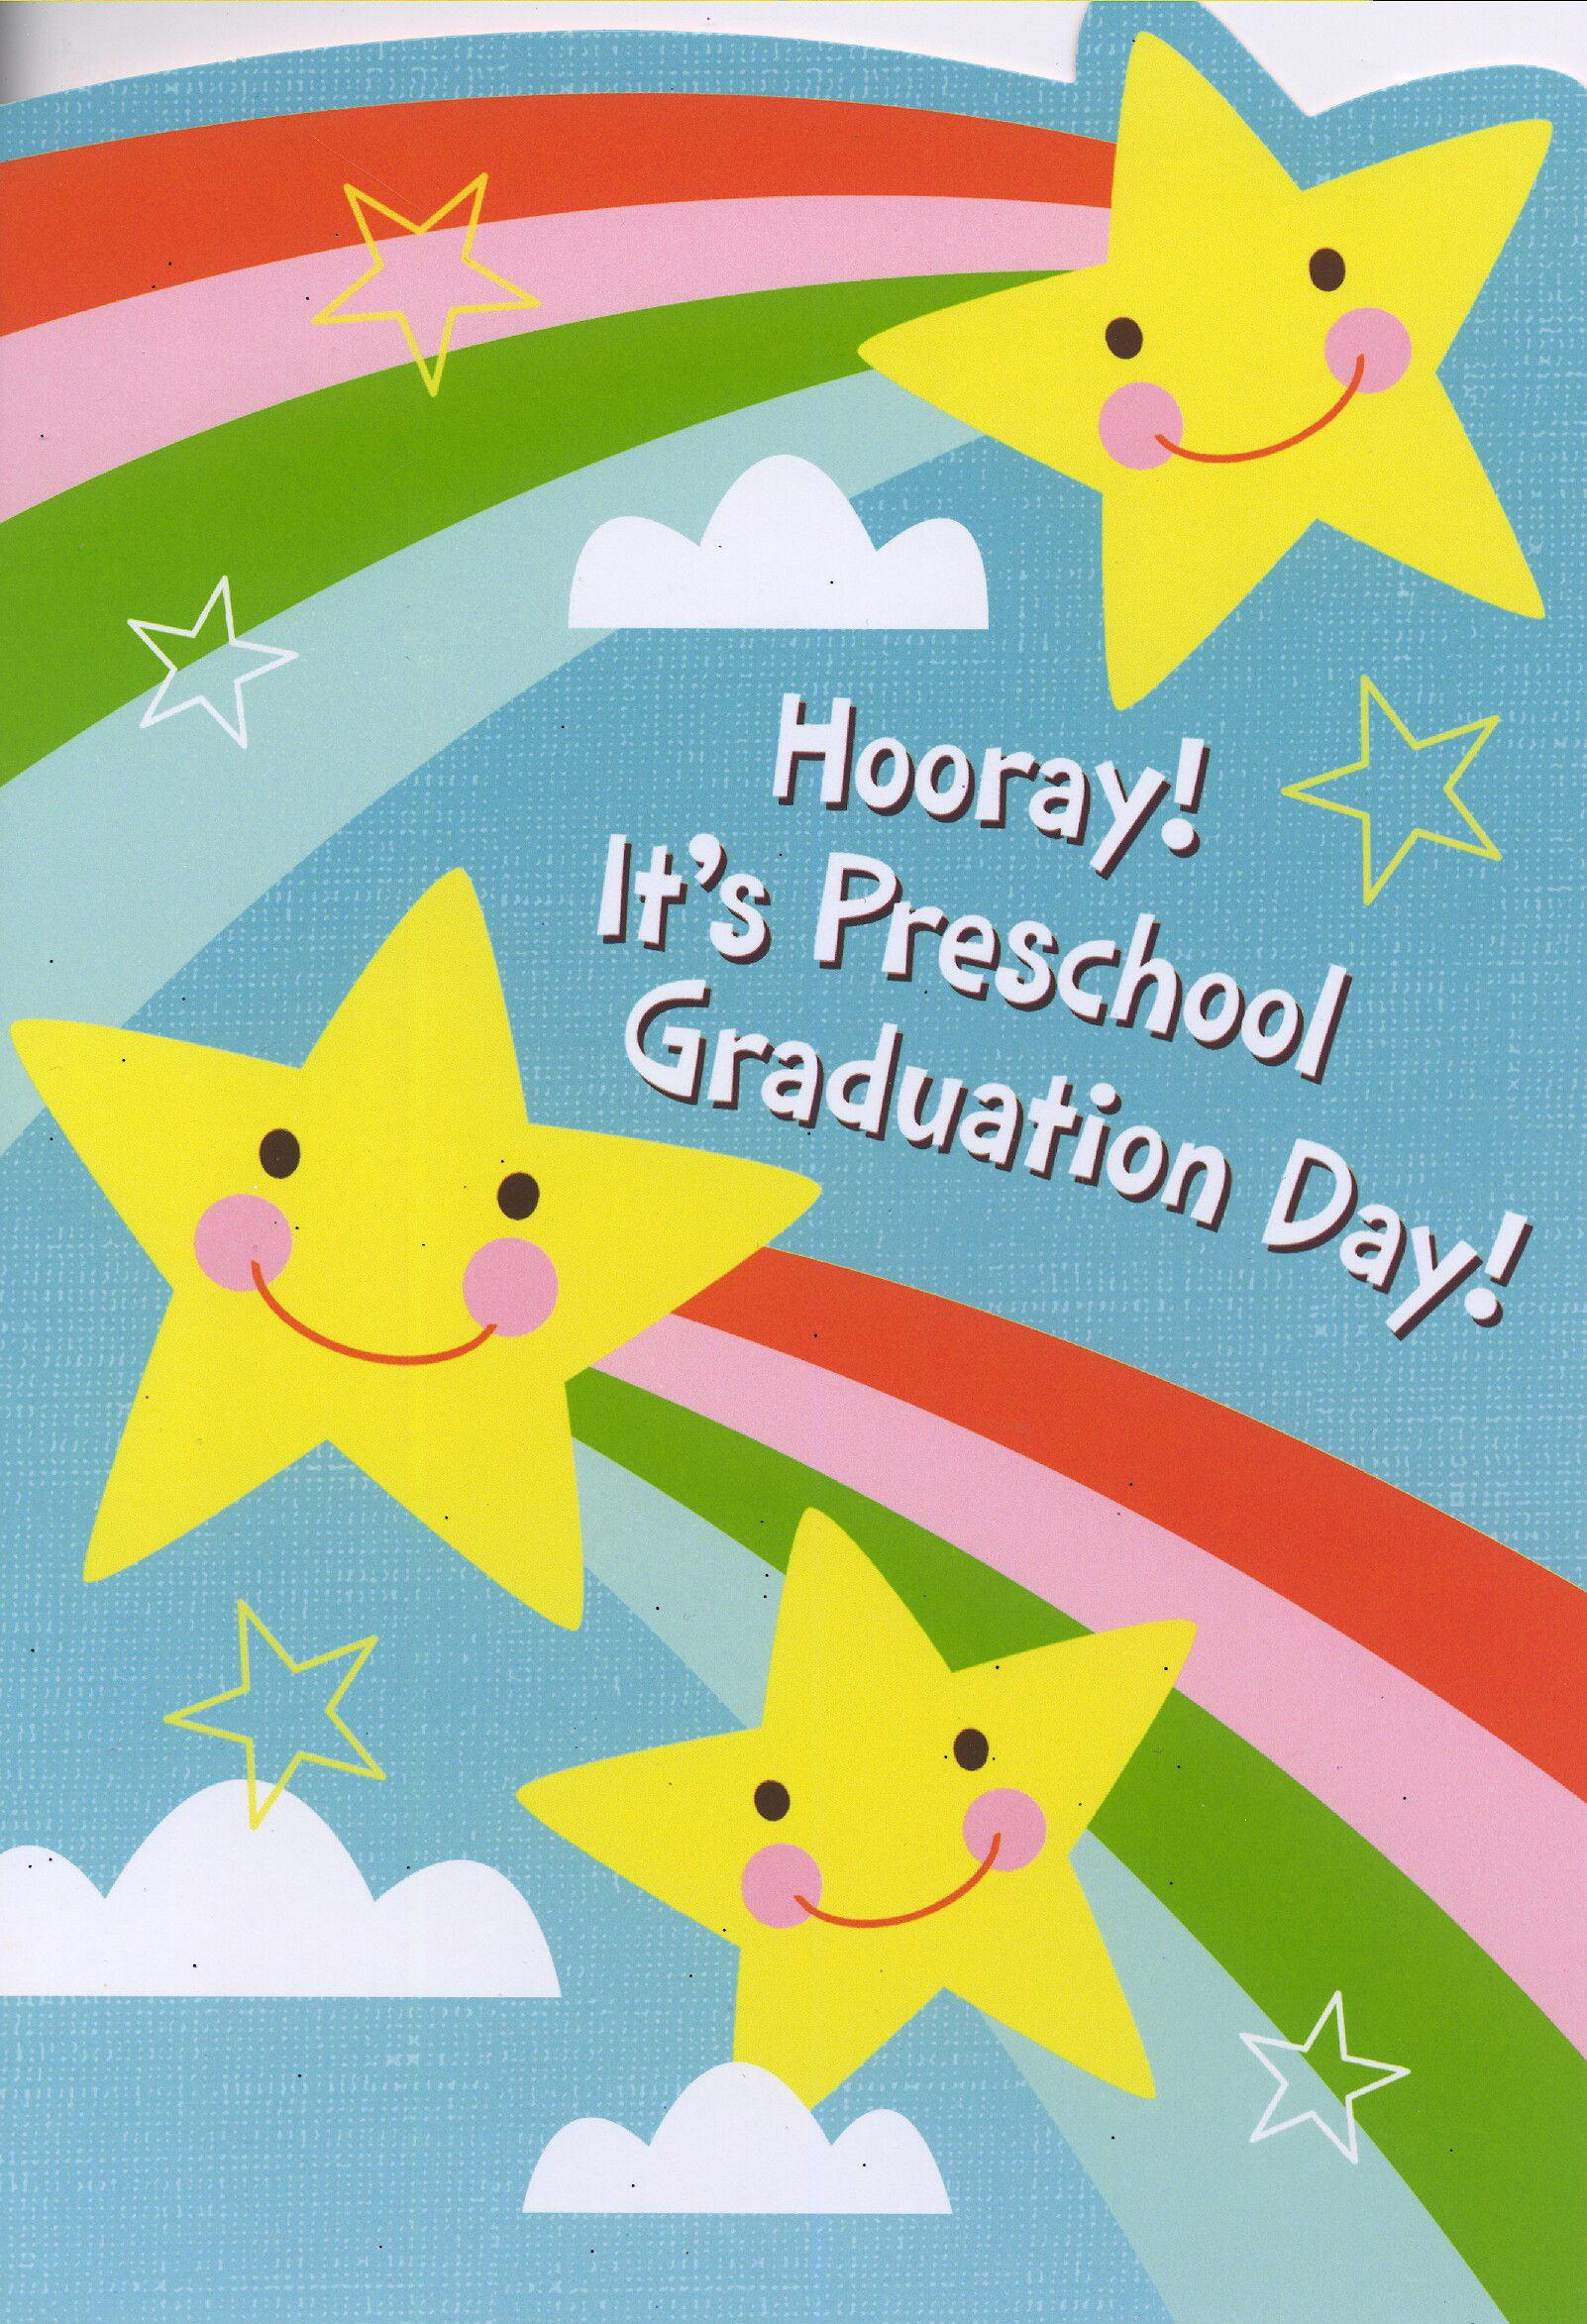 Hallmark Has Cards To Celebrate And Congratulate Graduates Of All Ages Like This Pre School Graduation Card